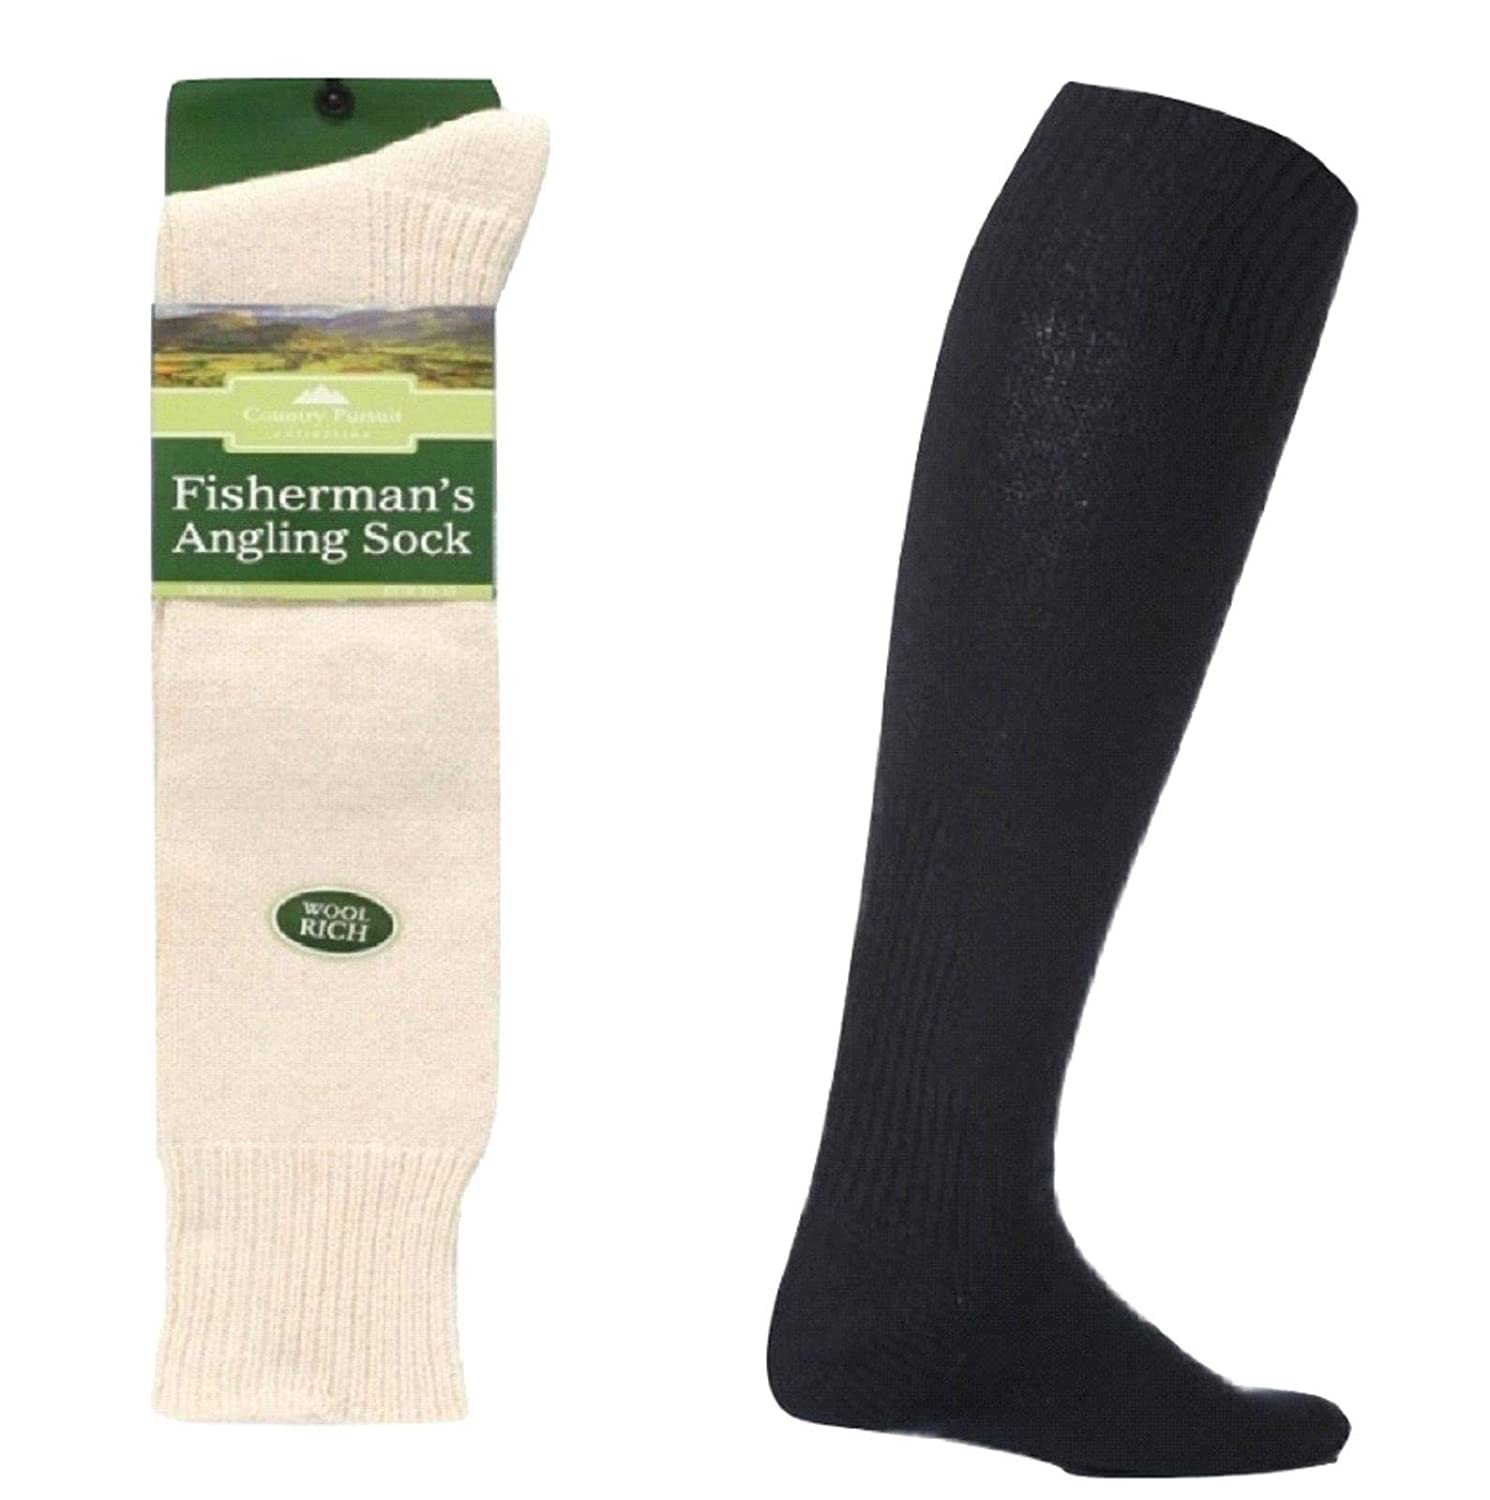 6 Pairs Men's Country Pursuit Wool Rich Fisherman's Long Thermal Angling Socks Size 6-11